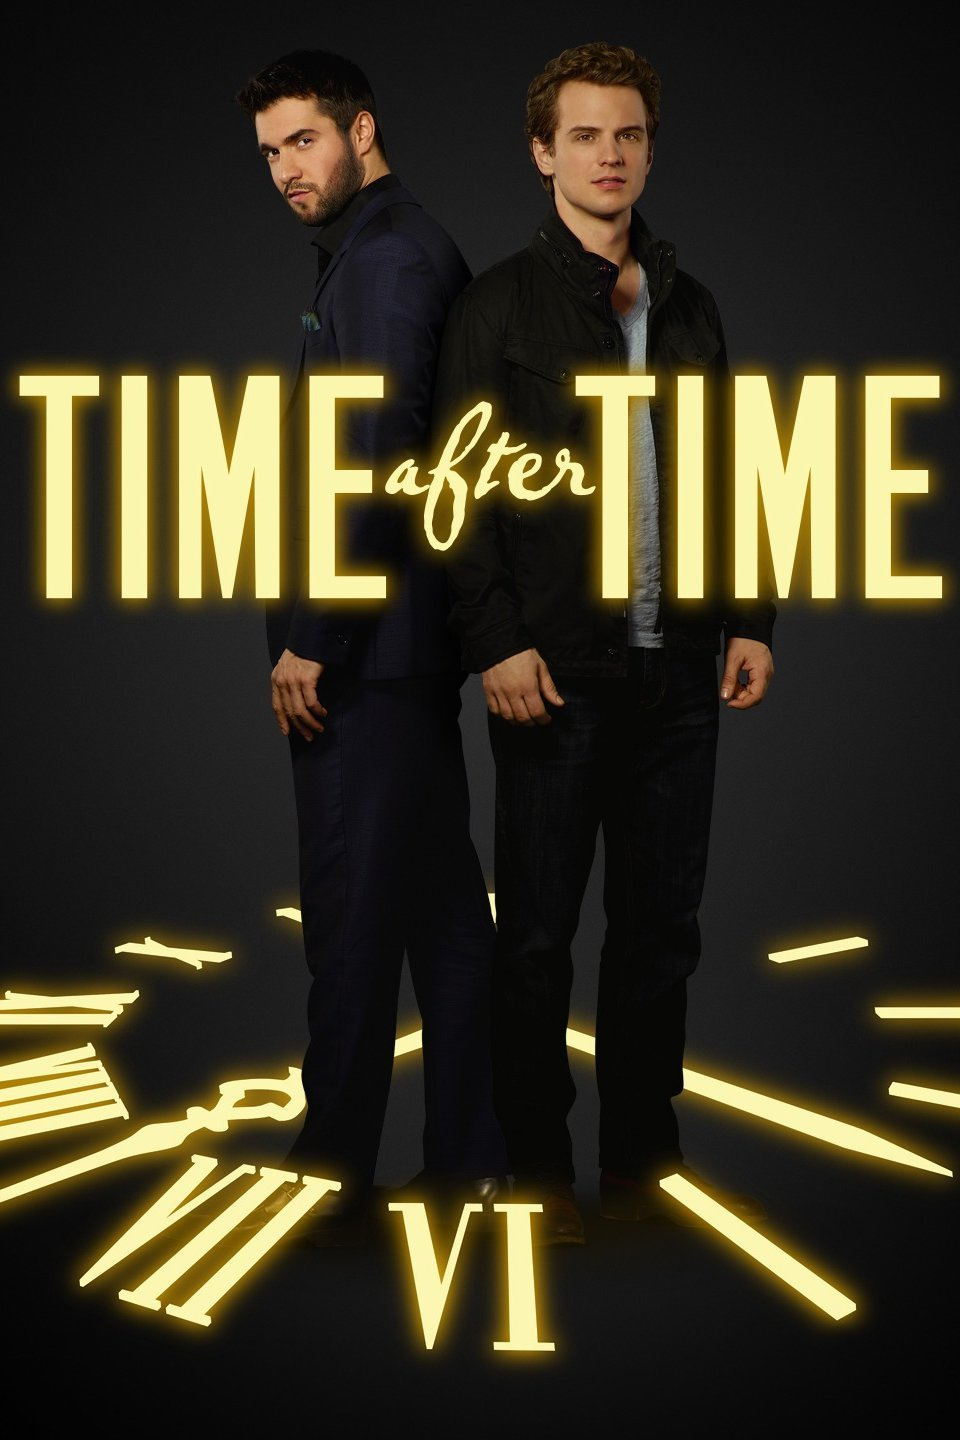 Time After Time Season 1 Episode 12 Download HDTV